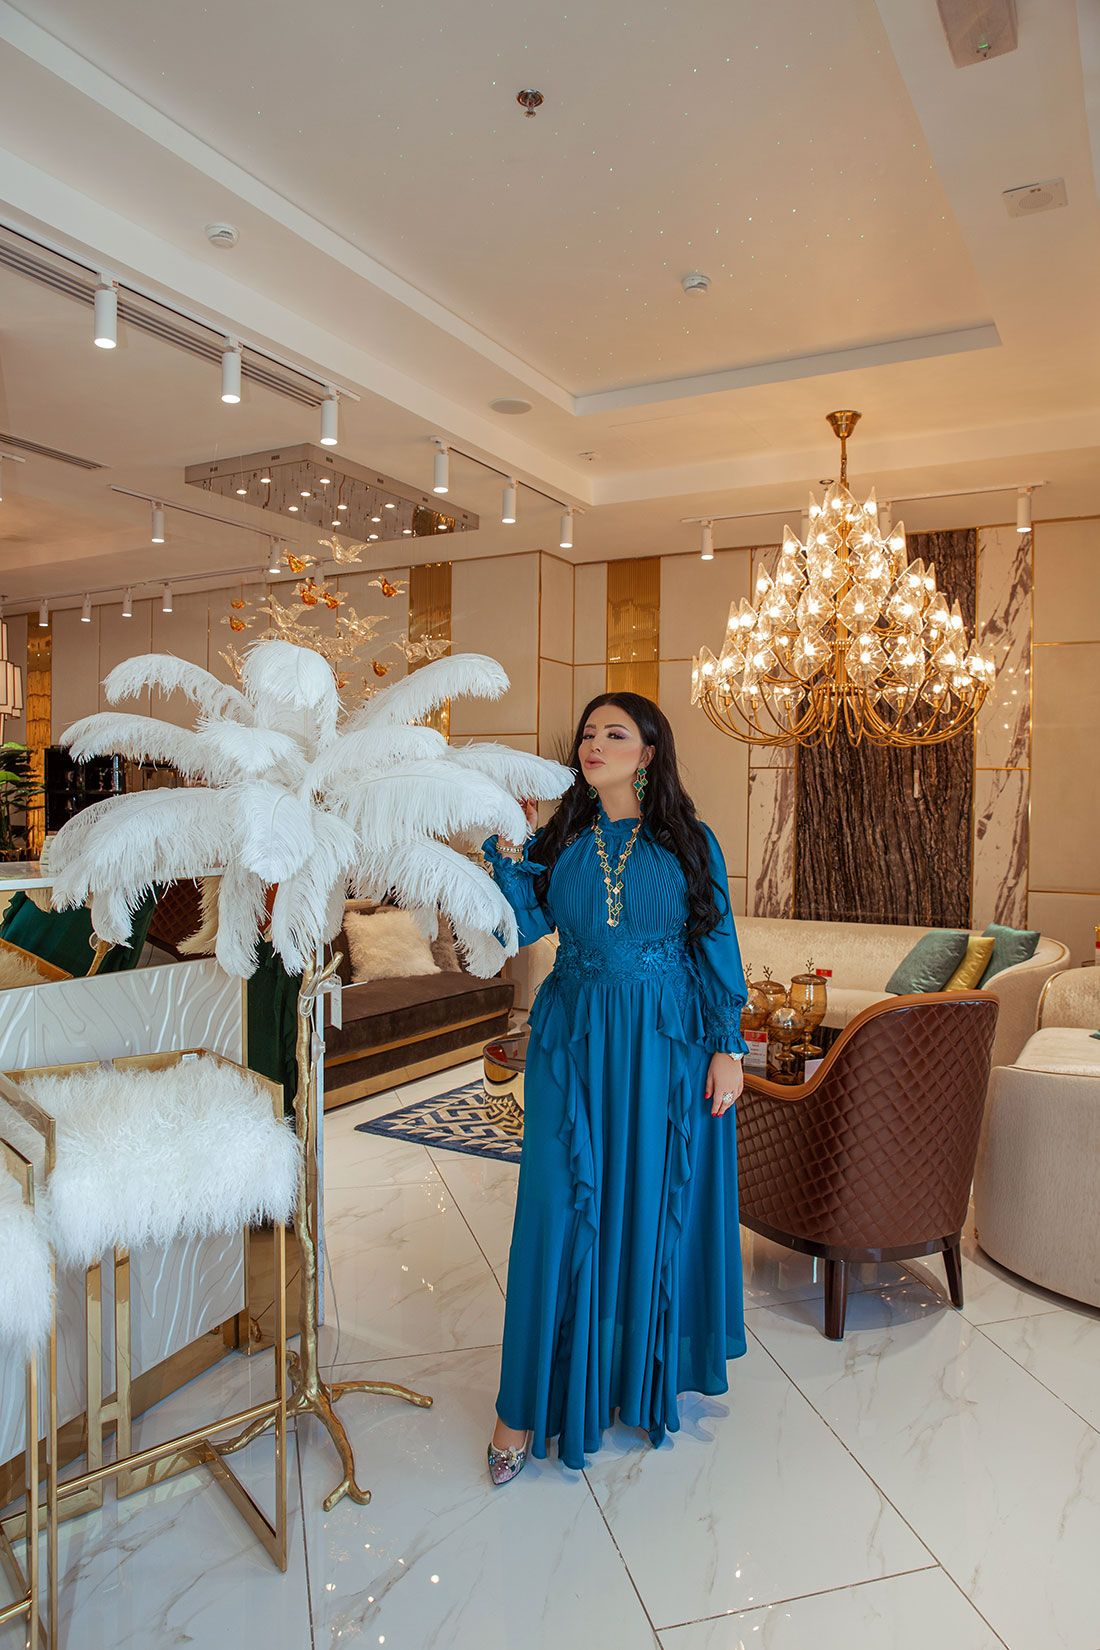 She Creates That Unique Atmosphere Of Glamour And Comfort For Which Customers Are Willing To Pay Any In 2020 Bright Designs Furniture Design Apartment Interior Design